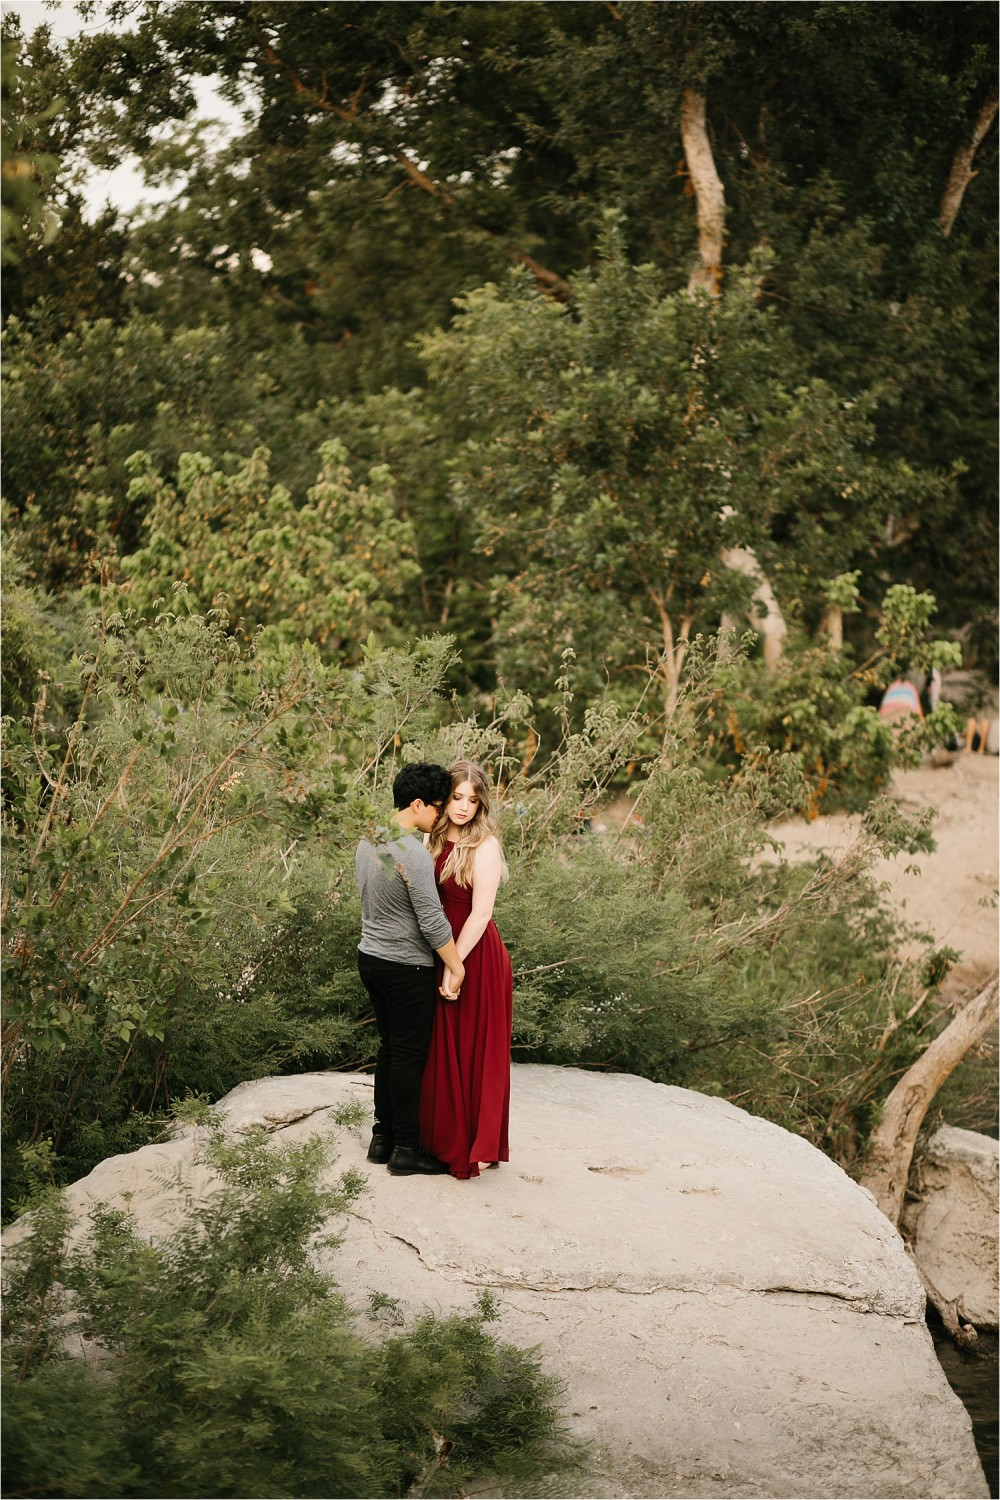 Romantic Austin, Texas Engagement Session with outfit inspiration + flowy red dress from Lulu's at Mckinney Falls State Park by North Texas Wedding Photographer, Rachel Meagan Photography __ 26